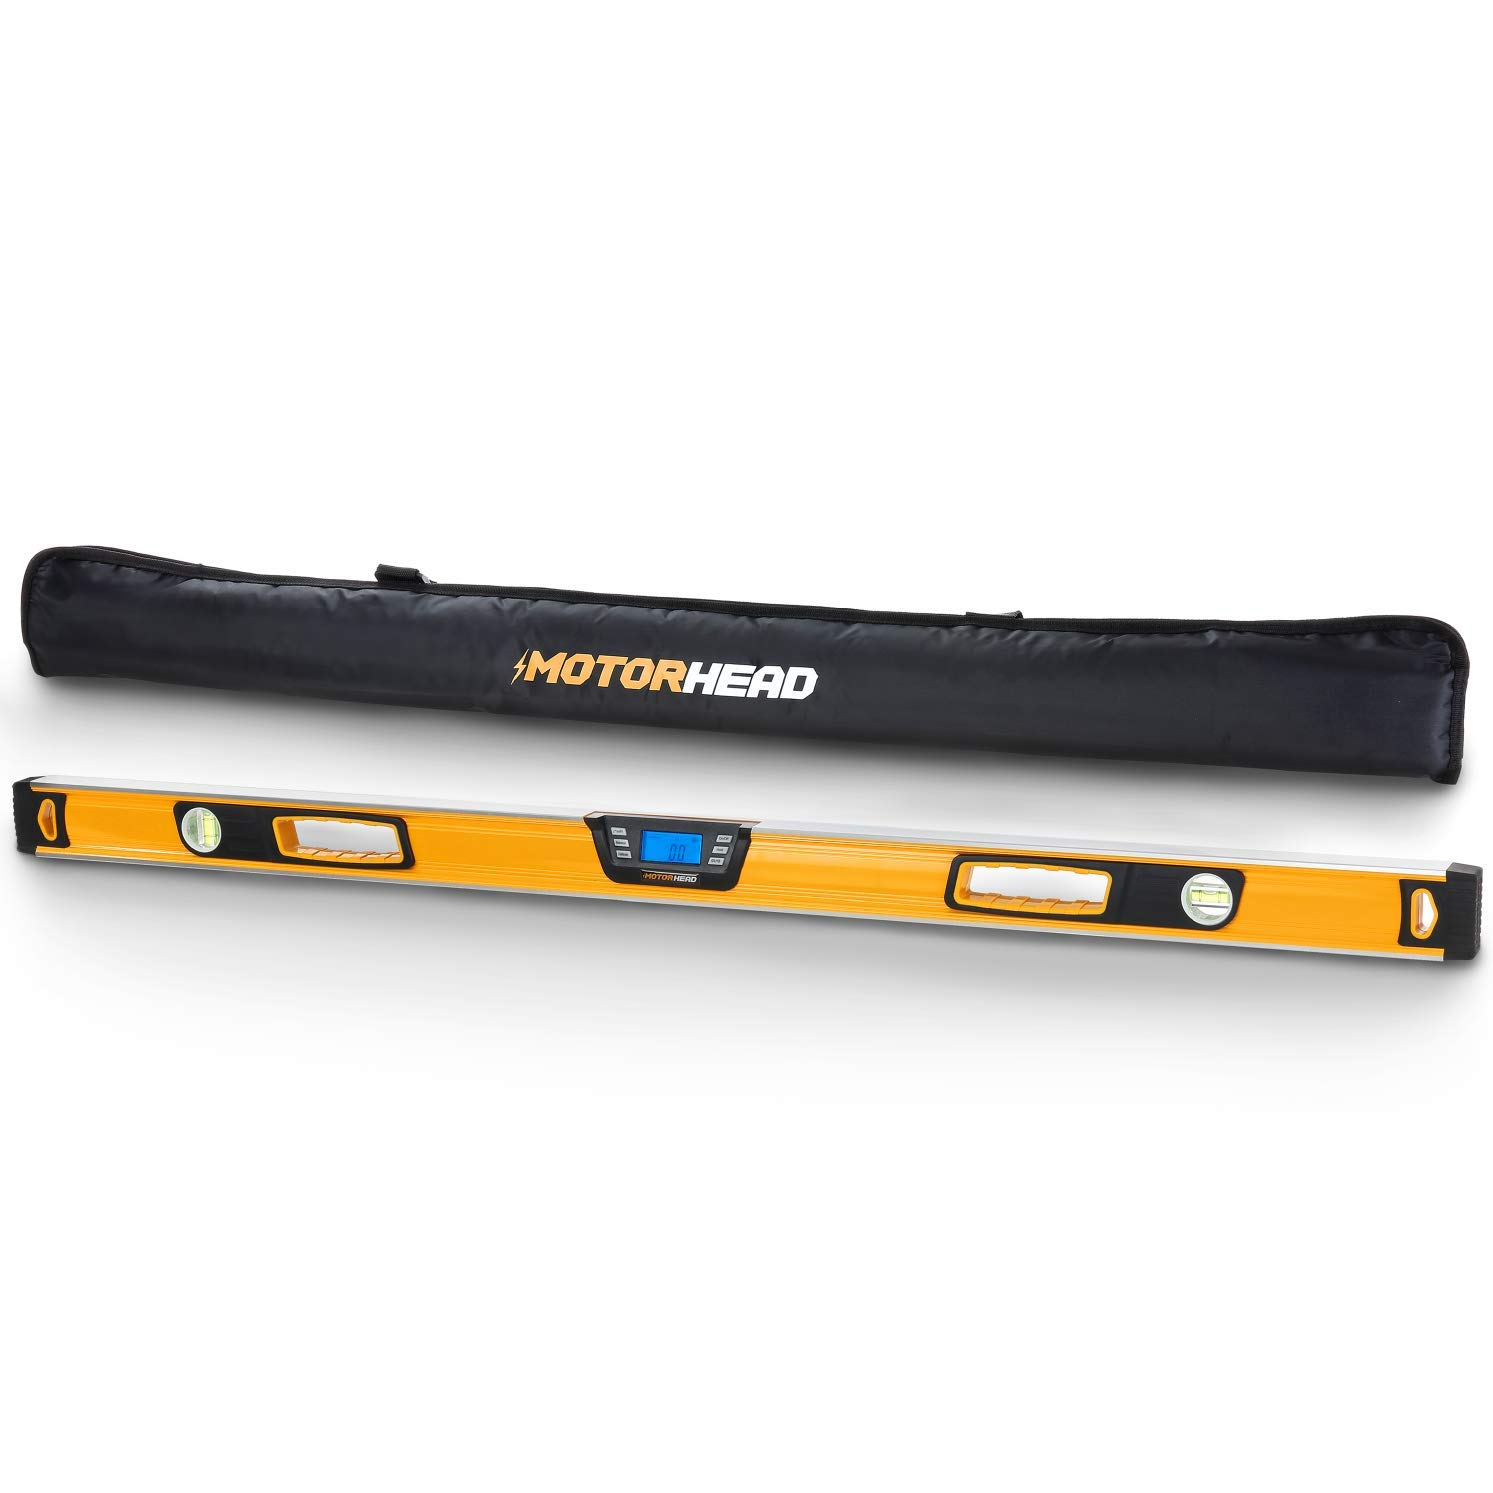 MOTORHEAD 48-Inch 0°-360° SMART DIGITAL Level, LCD Screen, Audible Alerts, Water, Dust & Shock Resistant, Magnetic Bottom, Includes Bag, High-Visibility, Solid-Milled Aluminum, USA-Based Support